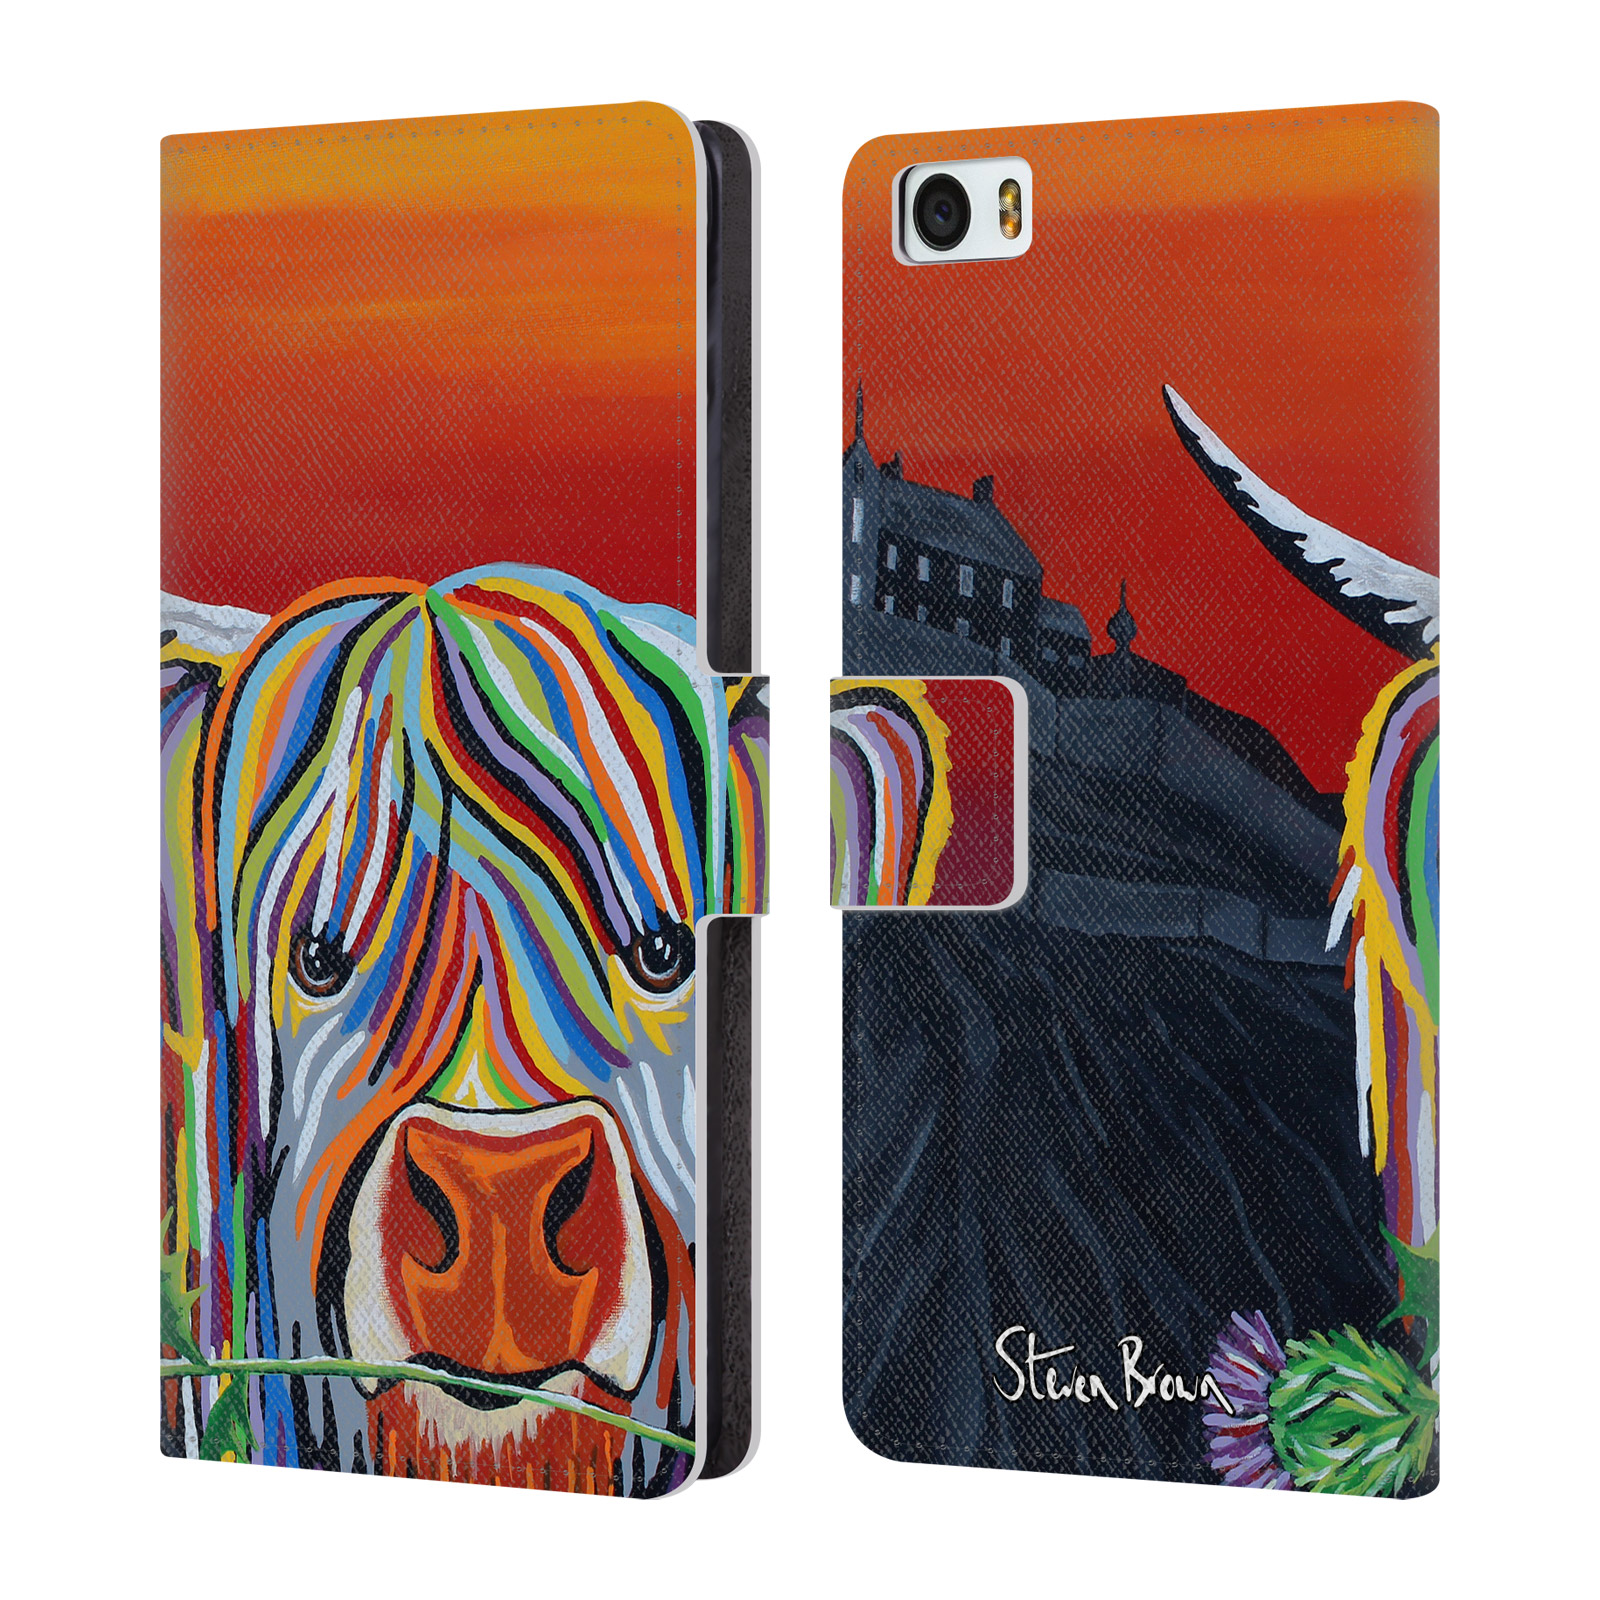 OFFICIAL-STEVEN-BROWN-HIGHLAND-COW-2-LEATHER-BOOK-WALLET-CASE-FOR-XIAOMI-PHONES